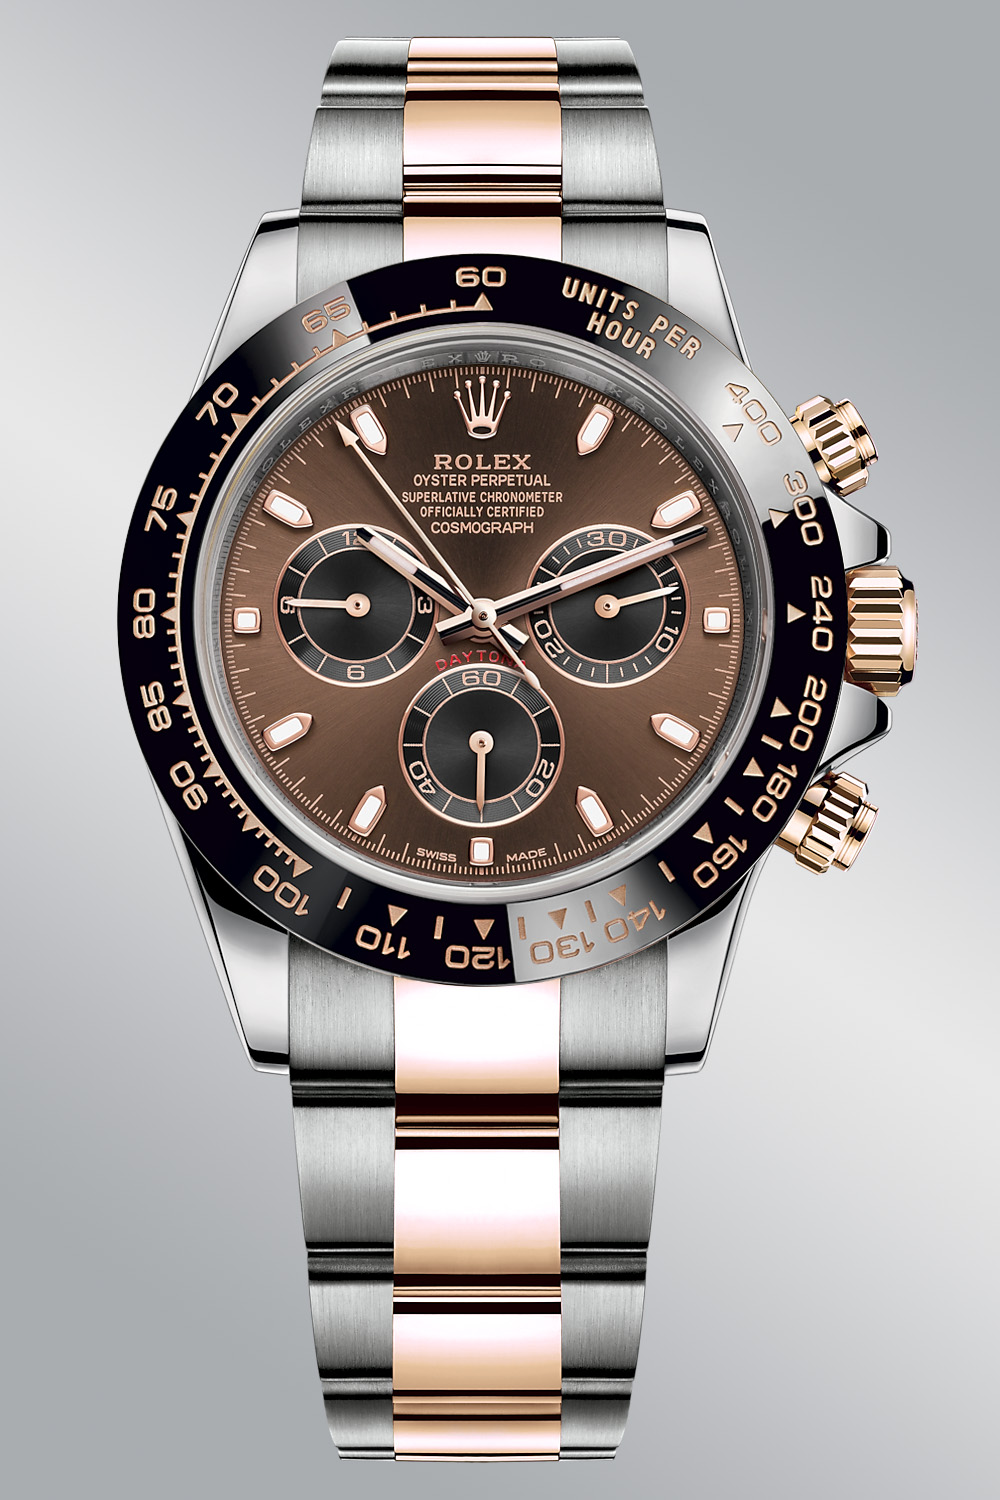 Rolex Predictions 2021 - Rolex New models 2021 - Rolex Daytona Rolesor Everose Ceramic 116511LN